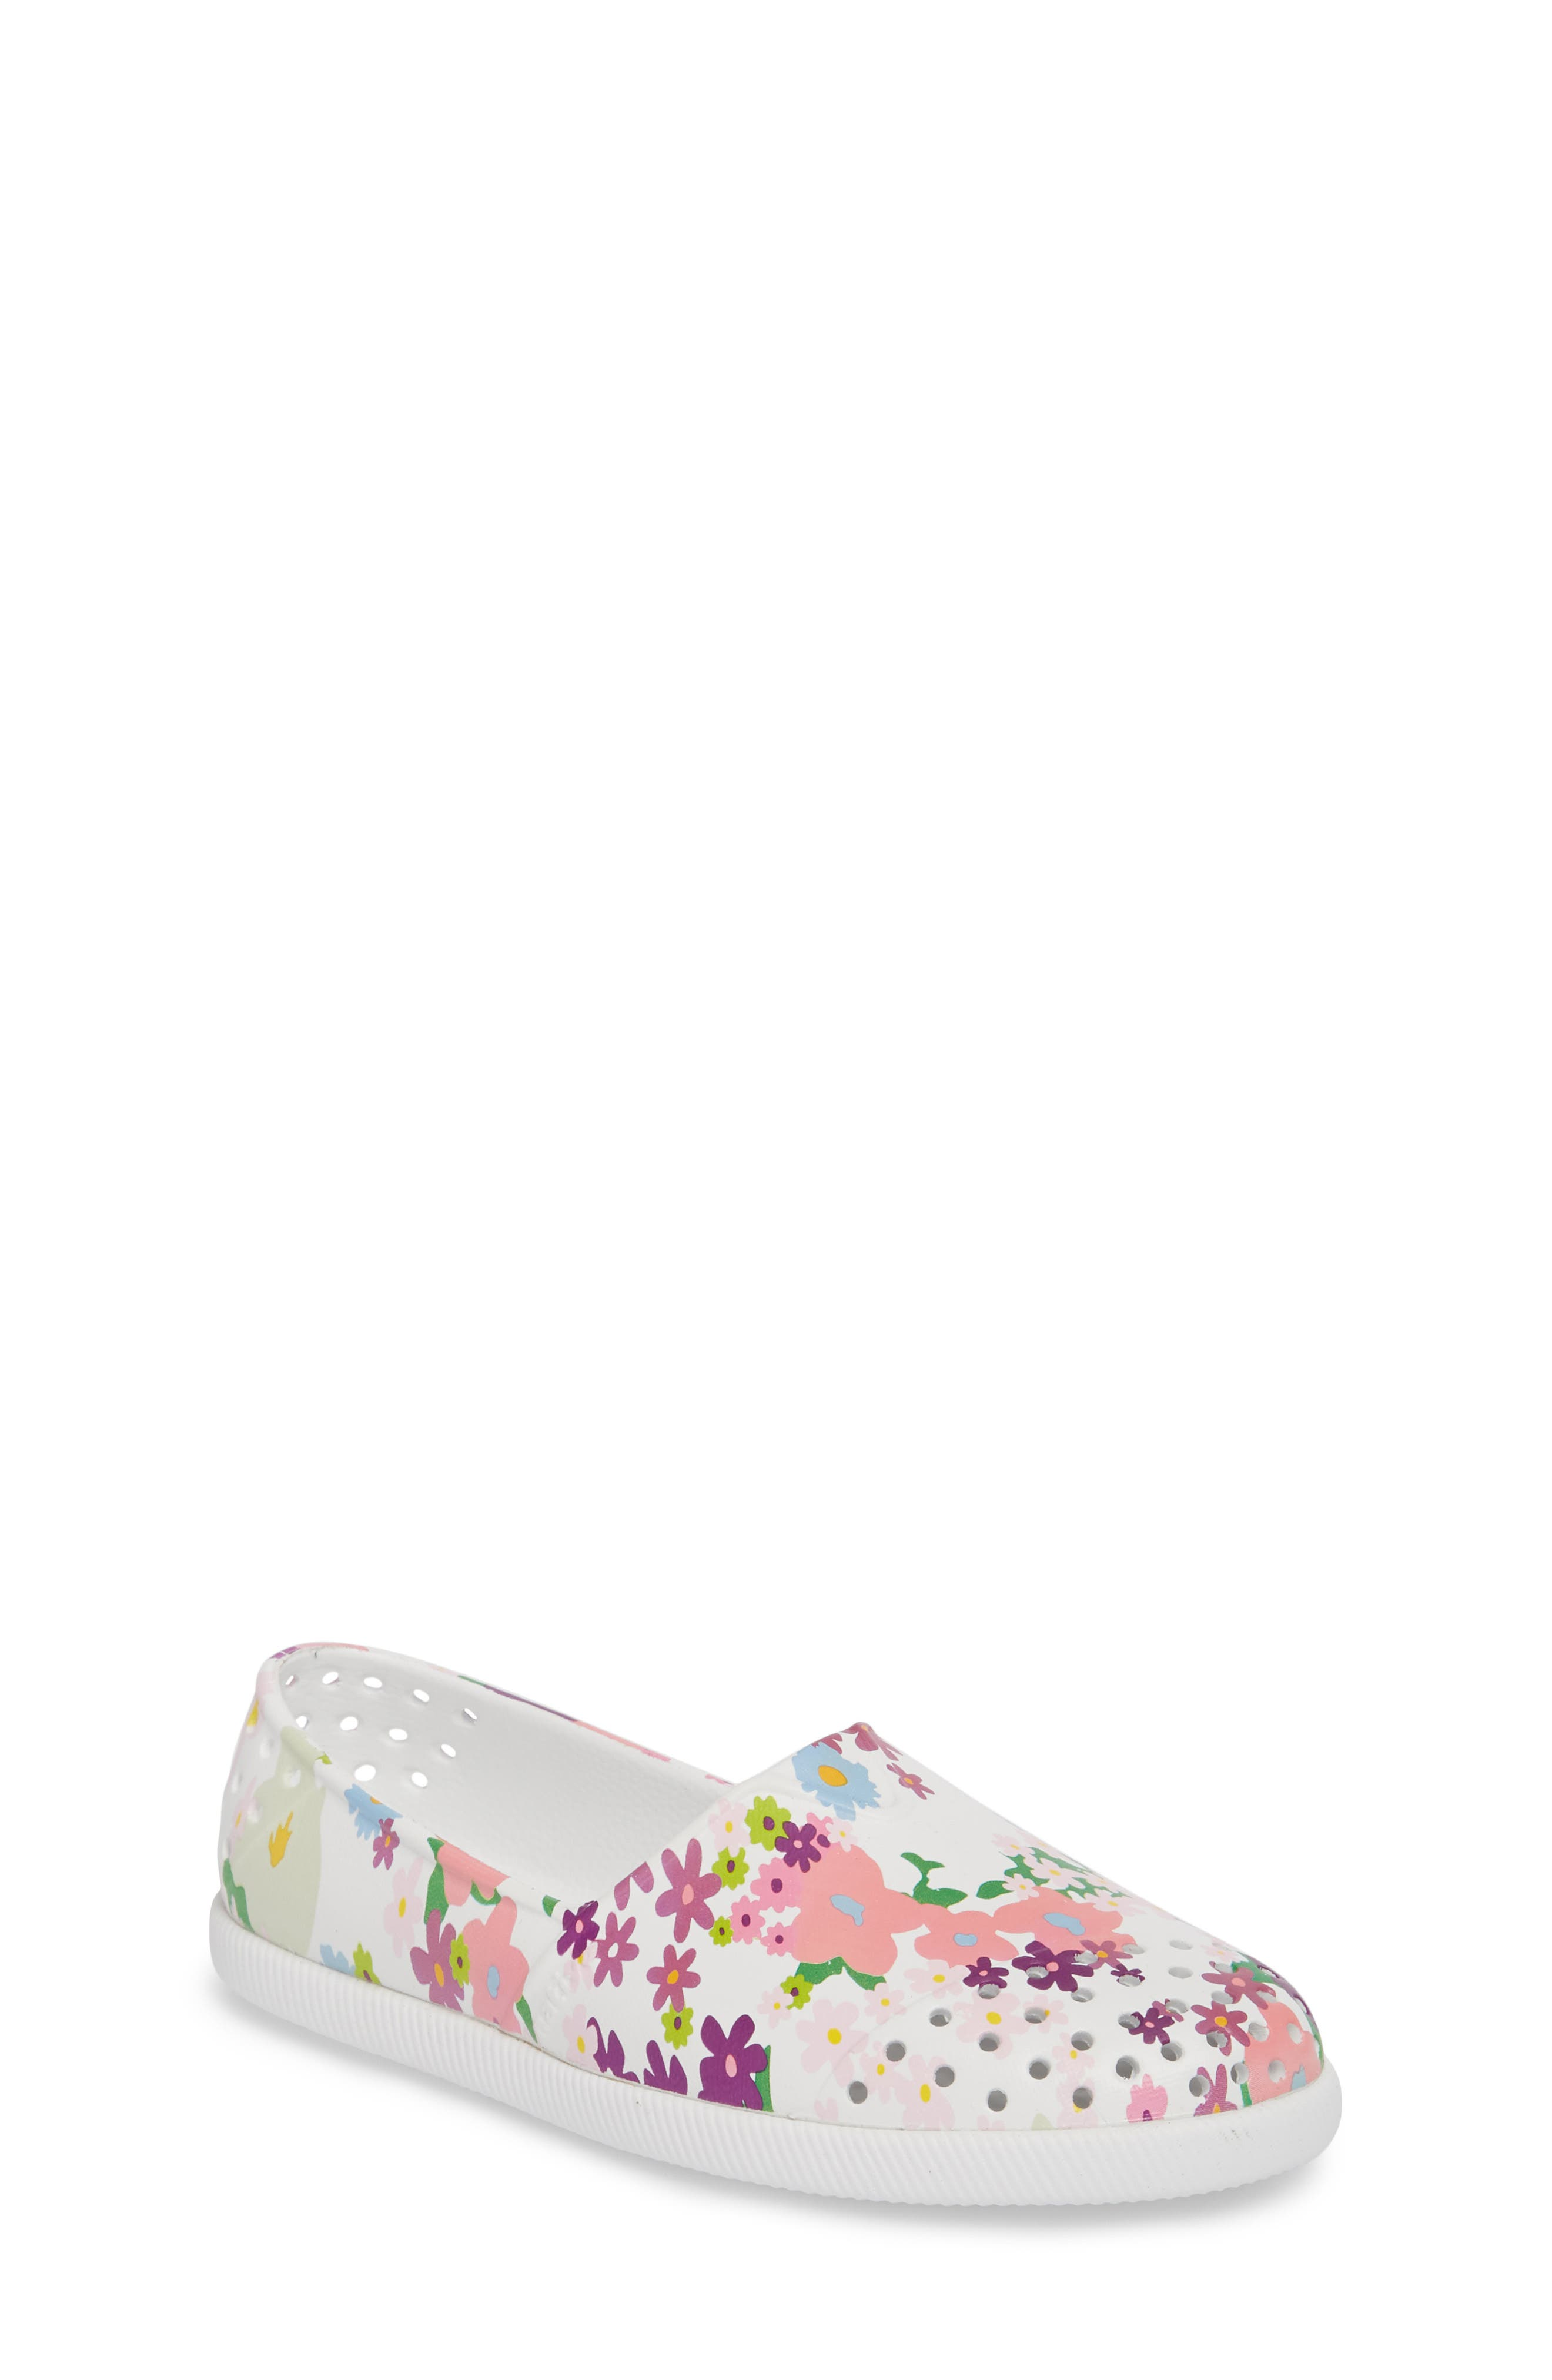 NATIVE SHOES Verona Perforated Slip-On, Main, color, 135